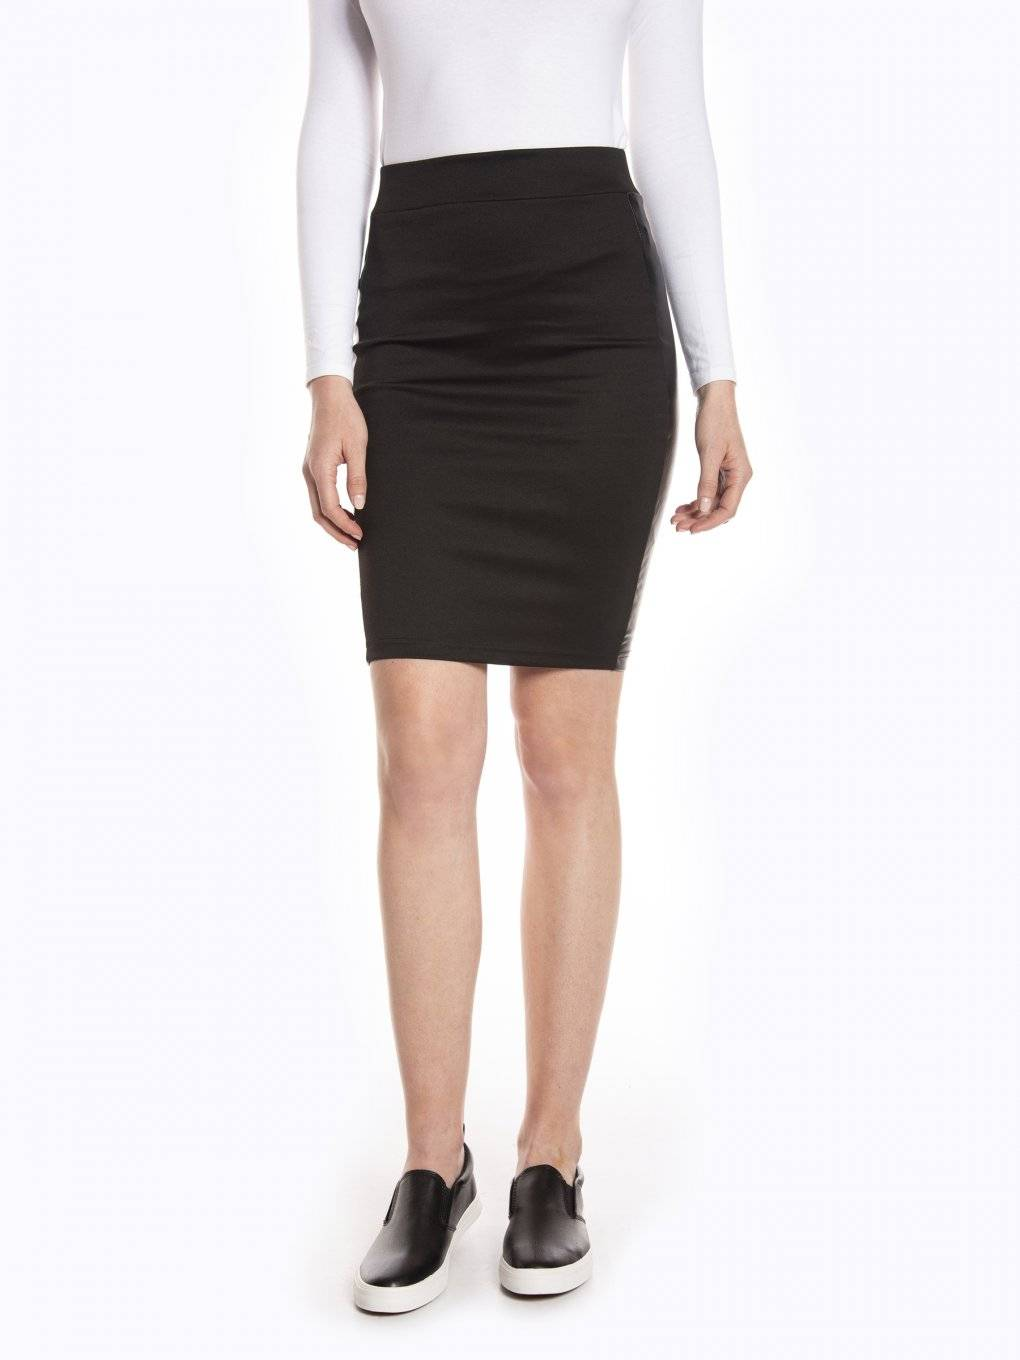 Bodycon skirt with faux leather side panels